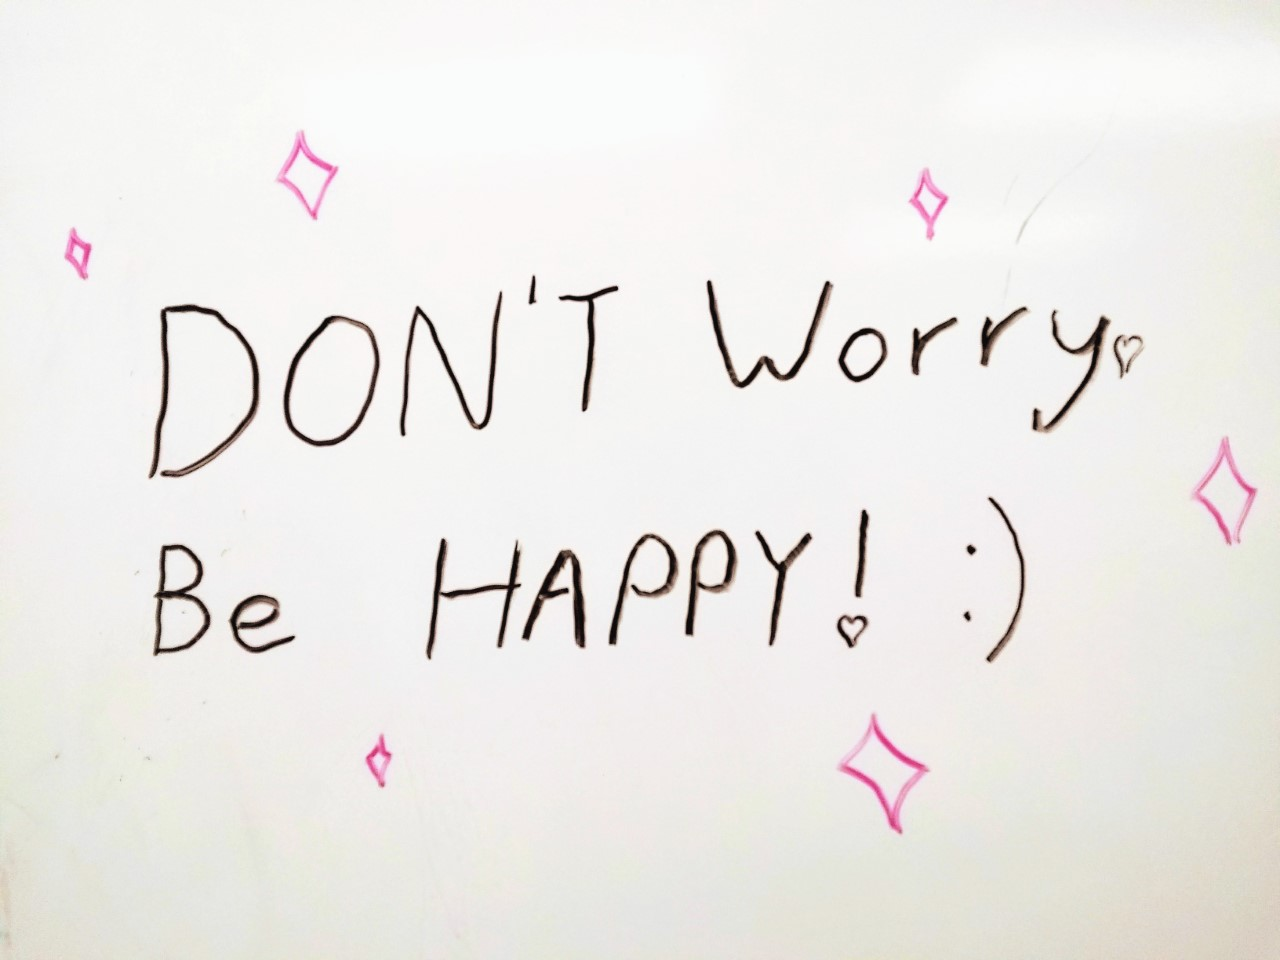 DON'T Worry. Be HAPPY! :)